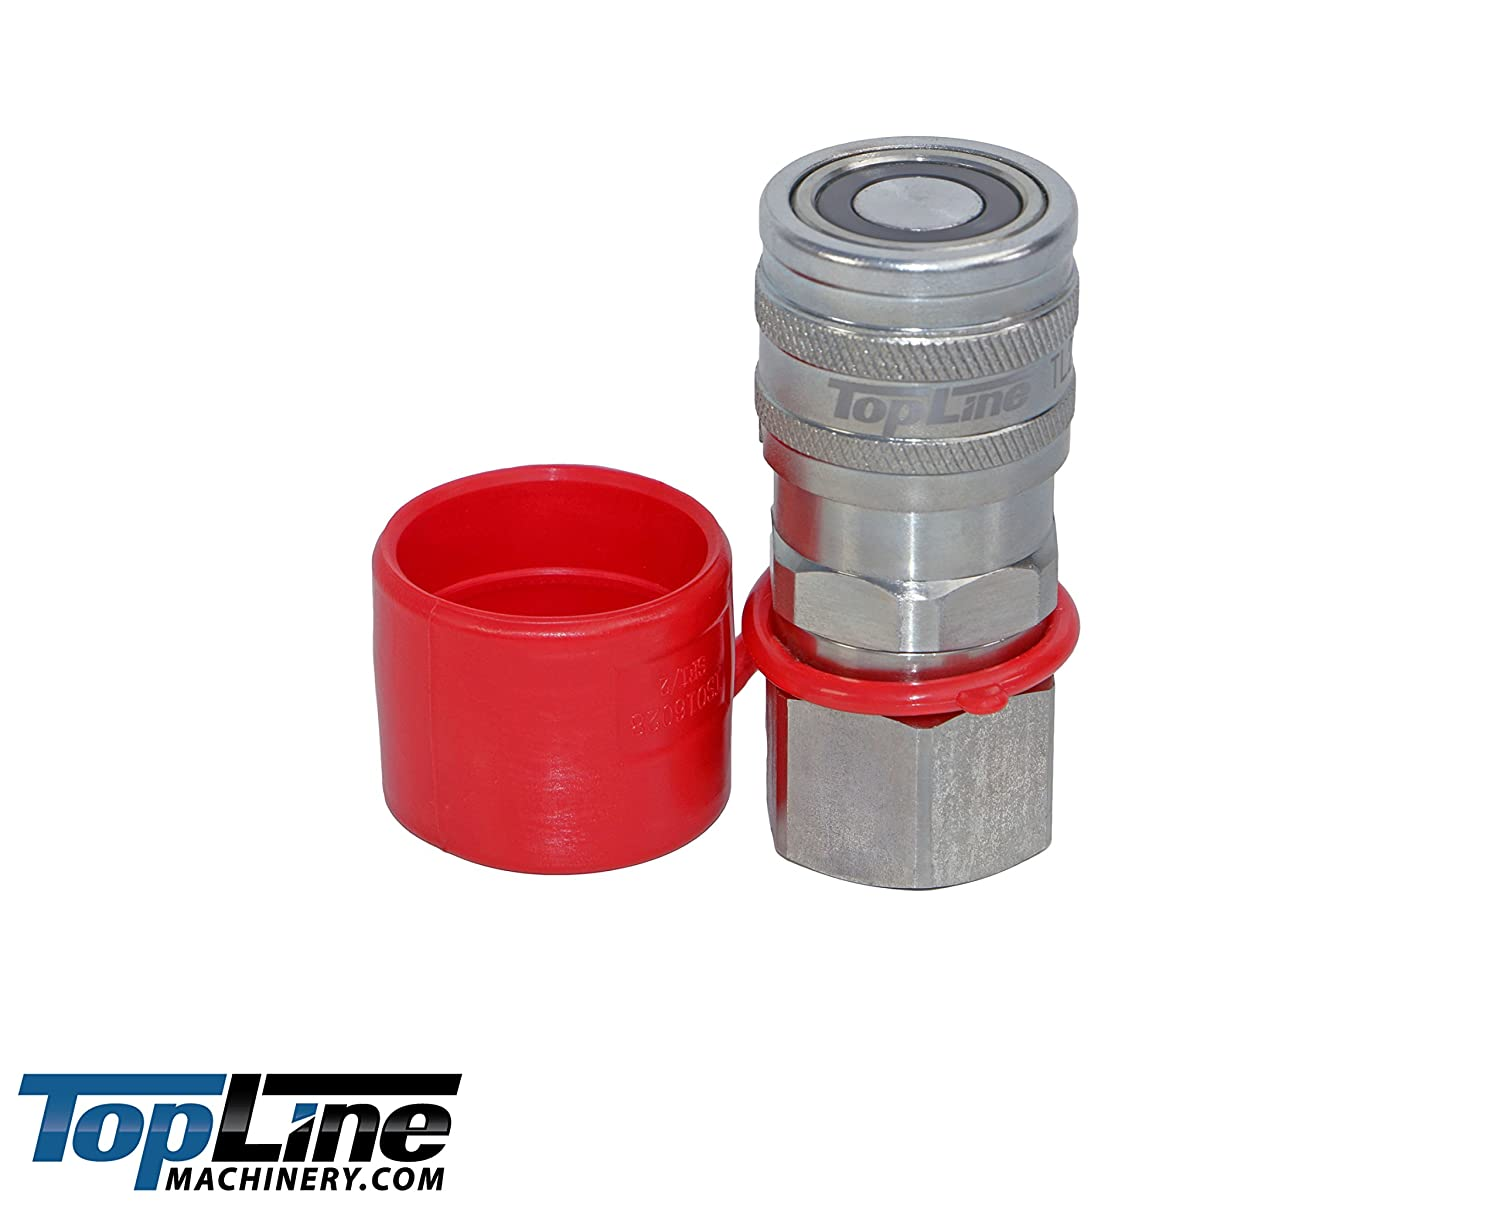 TL19 3//8 NPT Thread Flat Face Quick Connect Hydraulic Coupler 1//2 body size w//dust caps Coupling Bobcat Skid Steer Plug